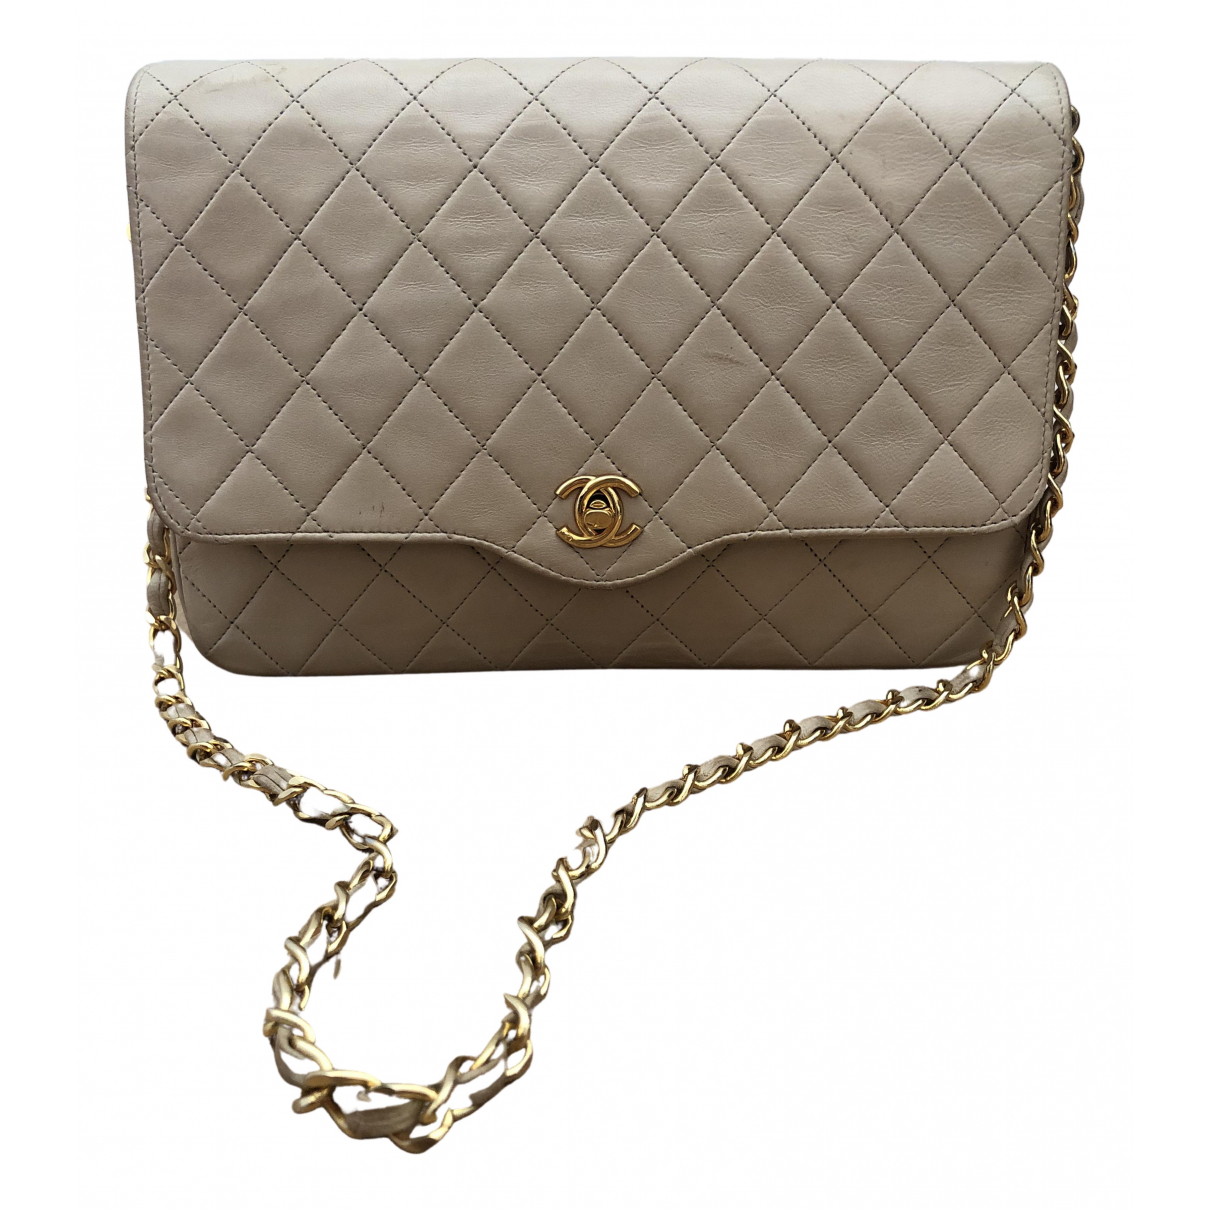 Chanel Timeless/Classique Clutch in  Beige Leder